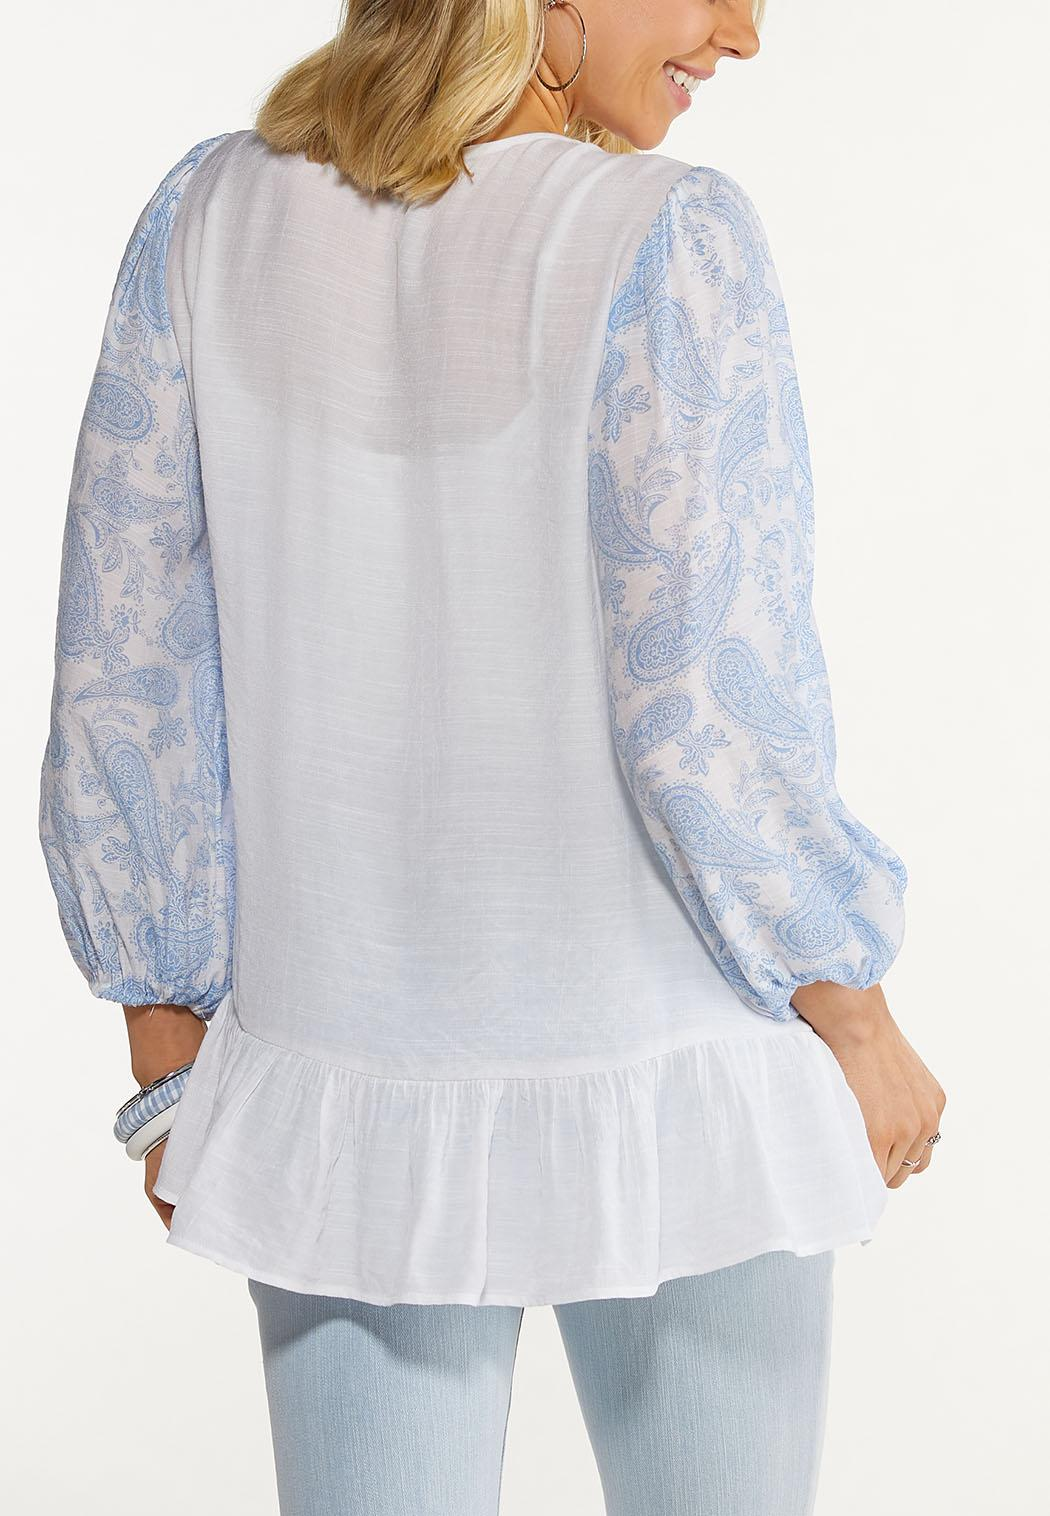 Paisley Sleeve Poet Top (Item #44547464)